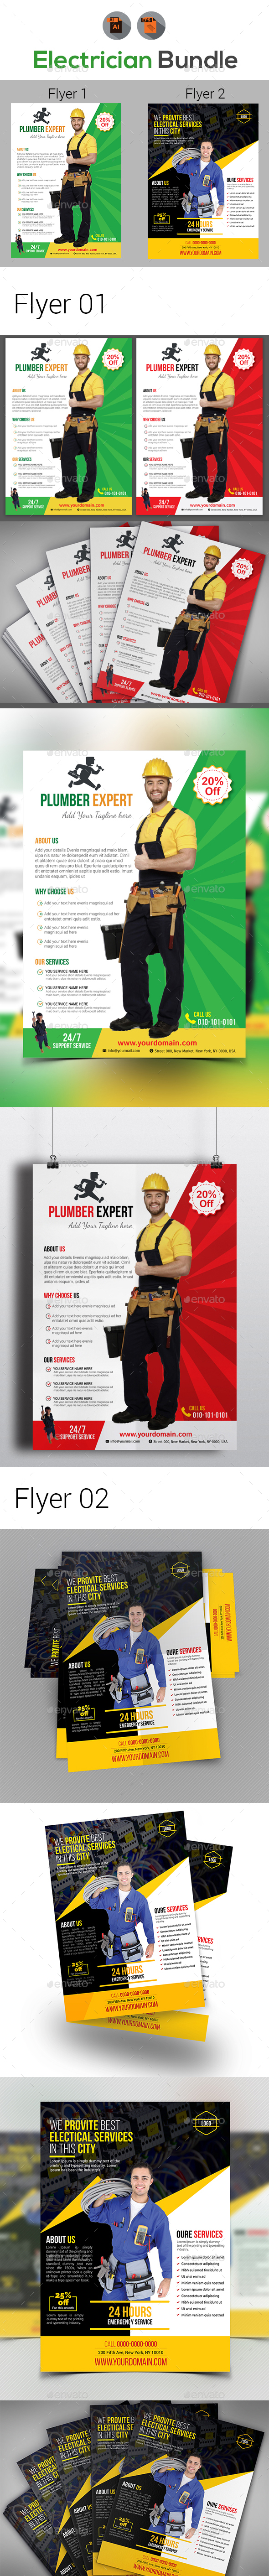 Handyman & Plumber Services Flyer Bundle - Corporate Flyers